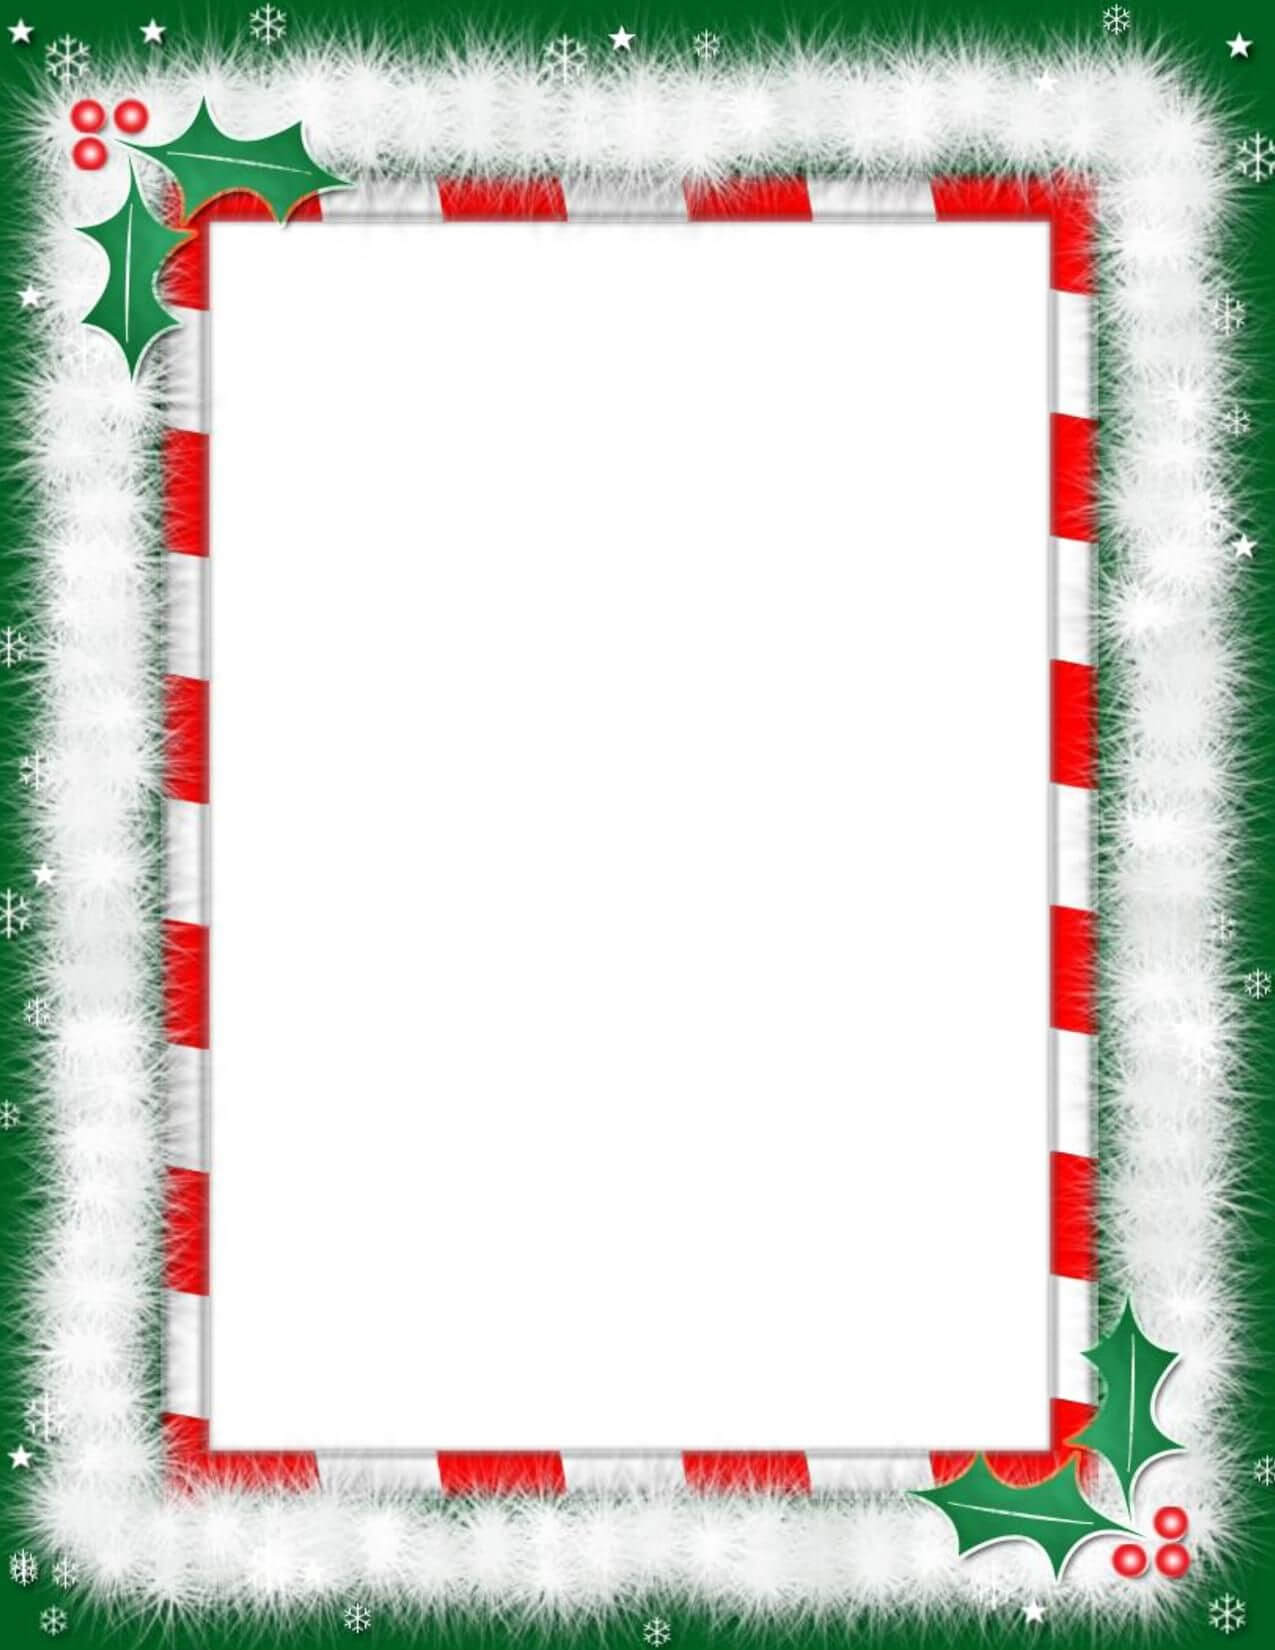 Heart Word Borders Templates Free |  Borders For Word Inside Christmas Border Word Template